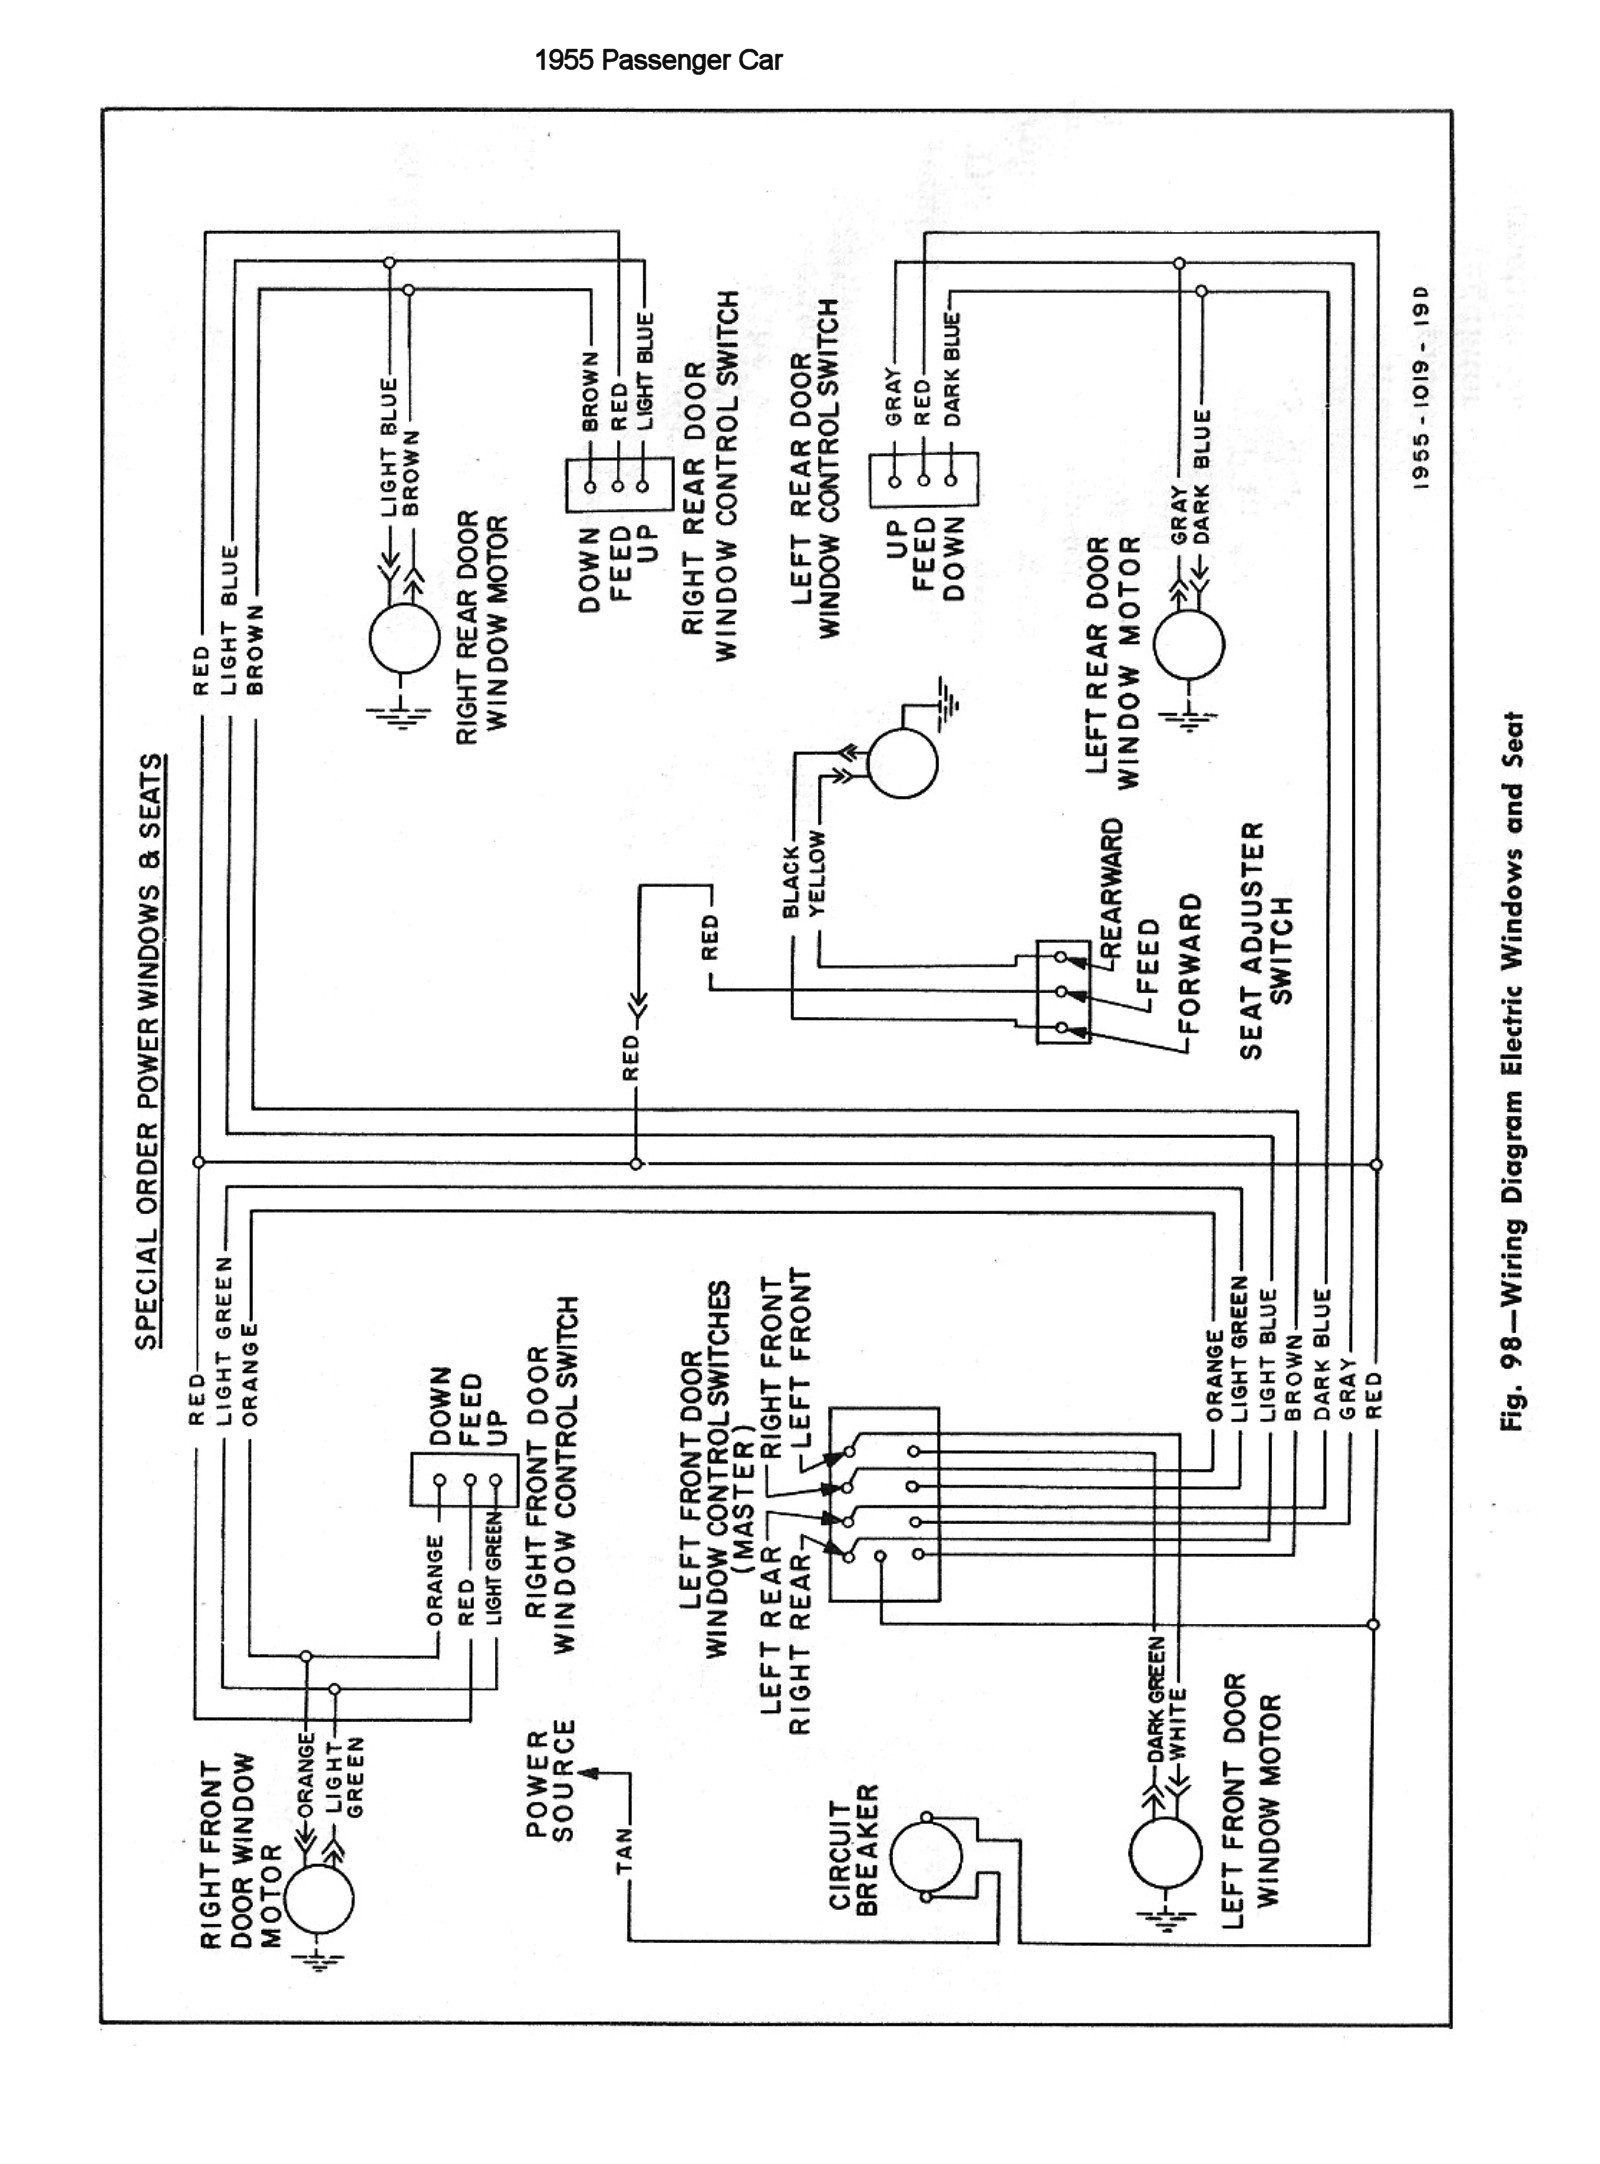 1952 willys wagon wiring diagram